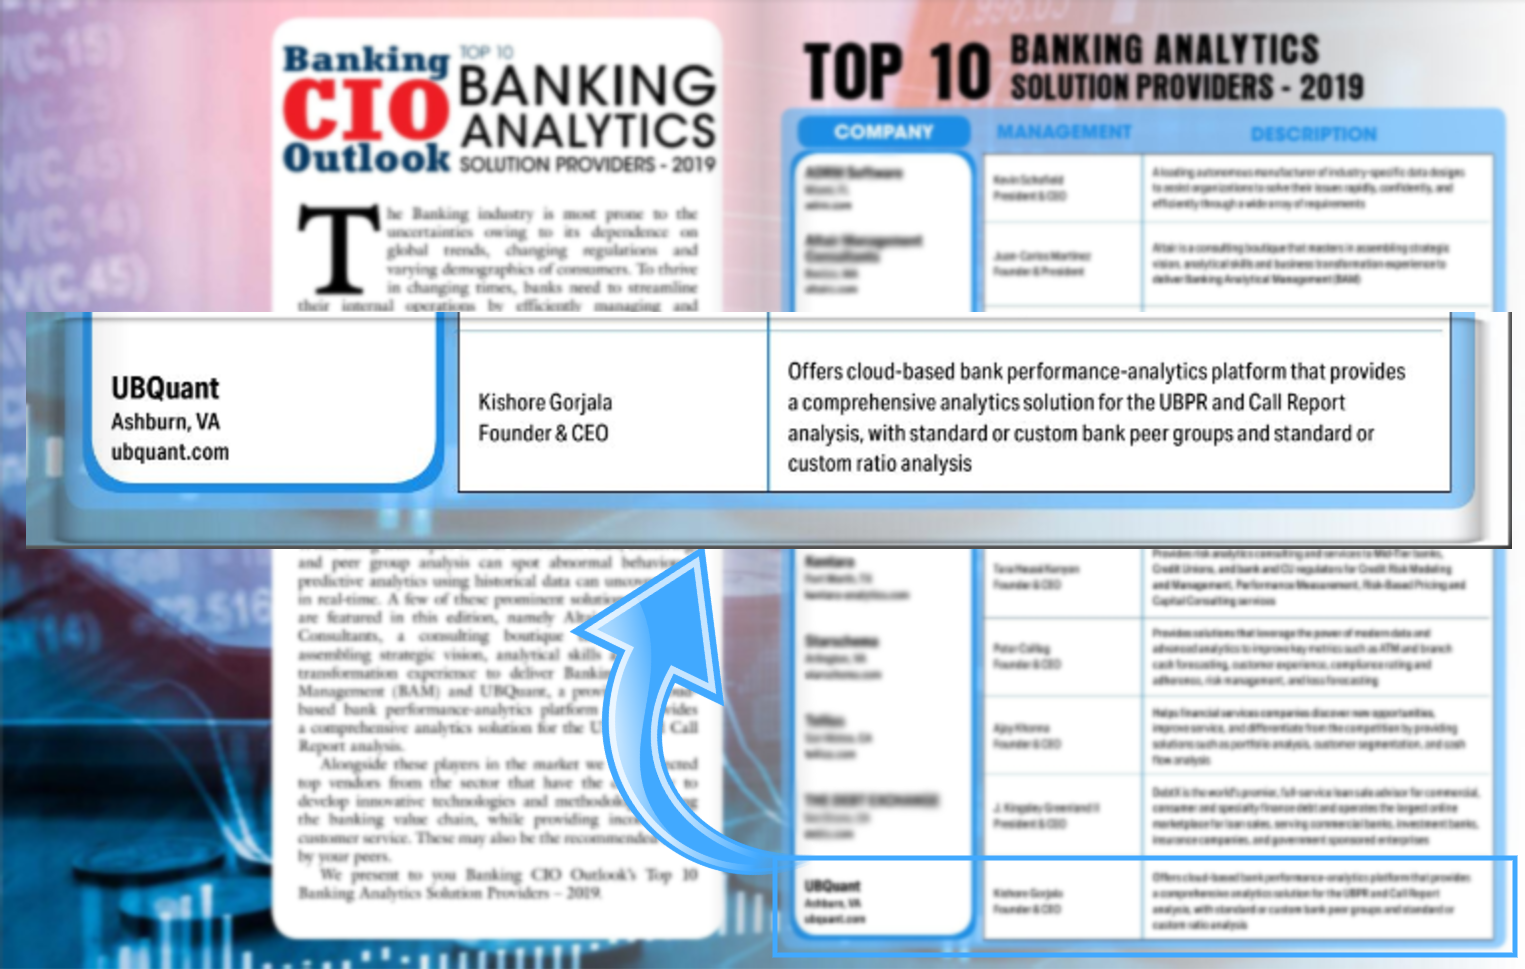 UBQuant in Banking CIO Outlook Top-10 list